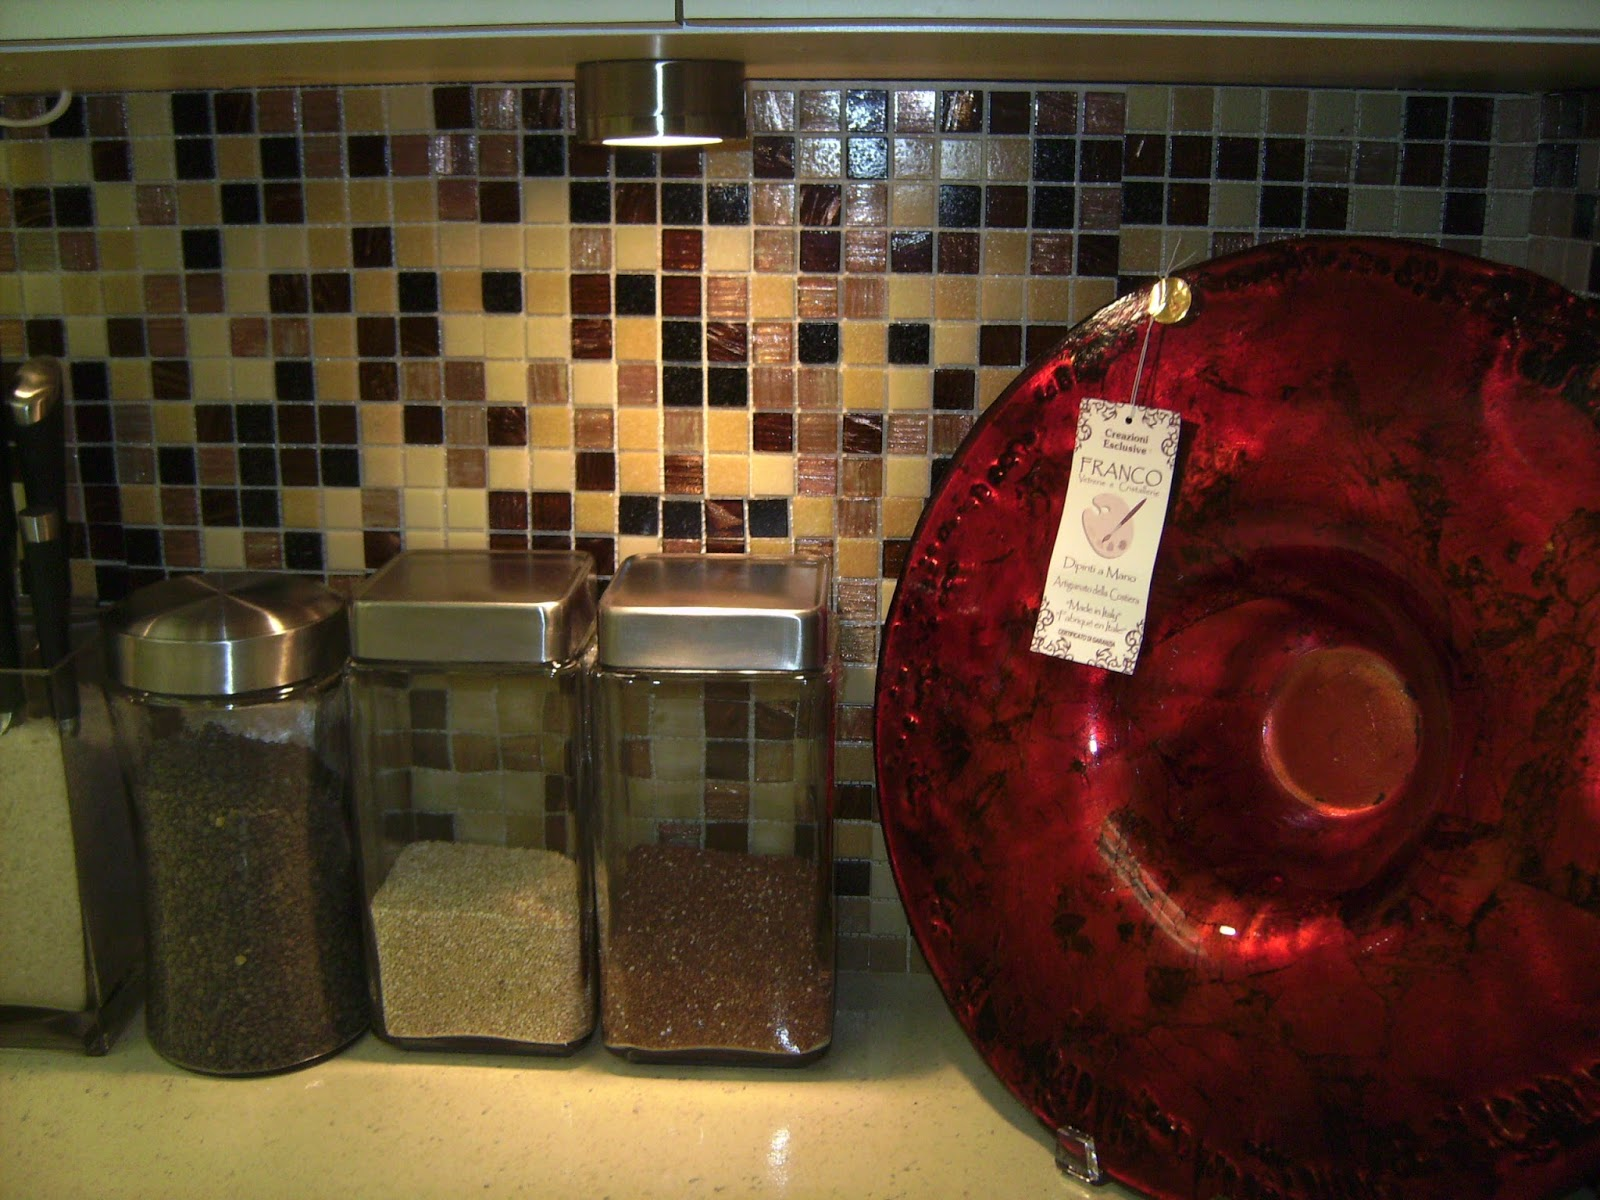 How to Remodel and Decorate a Small Kitchen, adding under the cabinet lighting, glass tile back splash